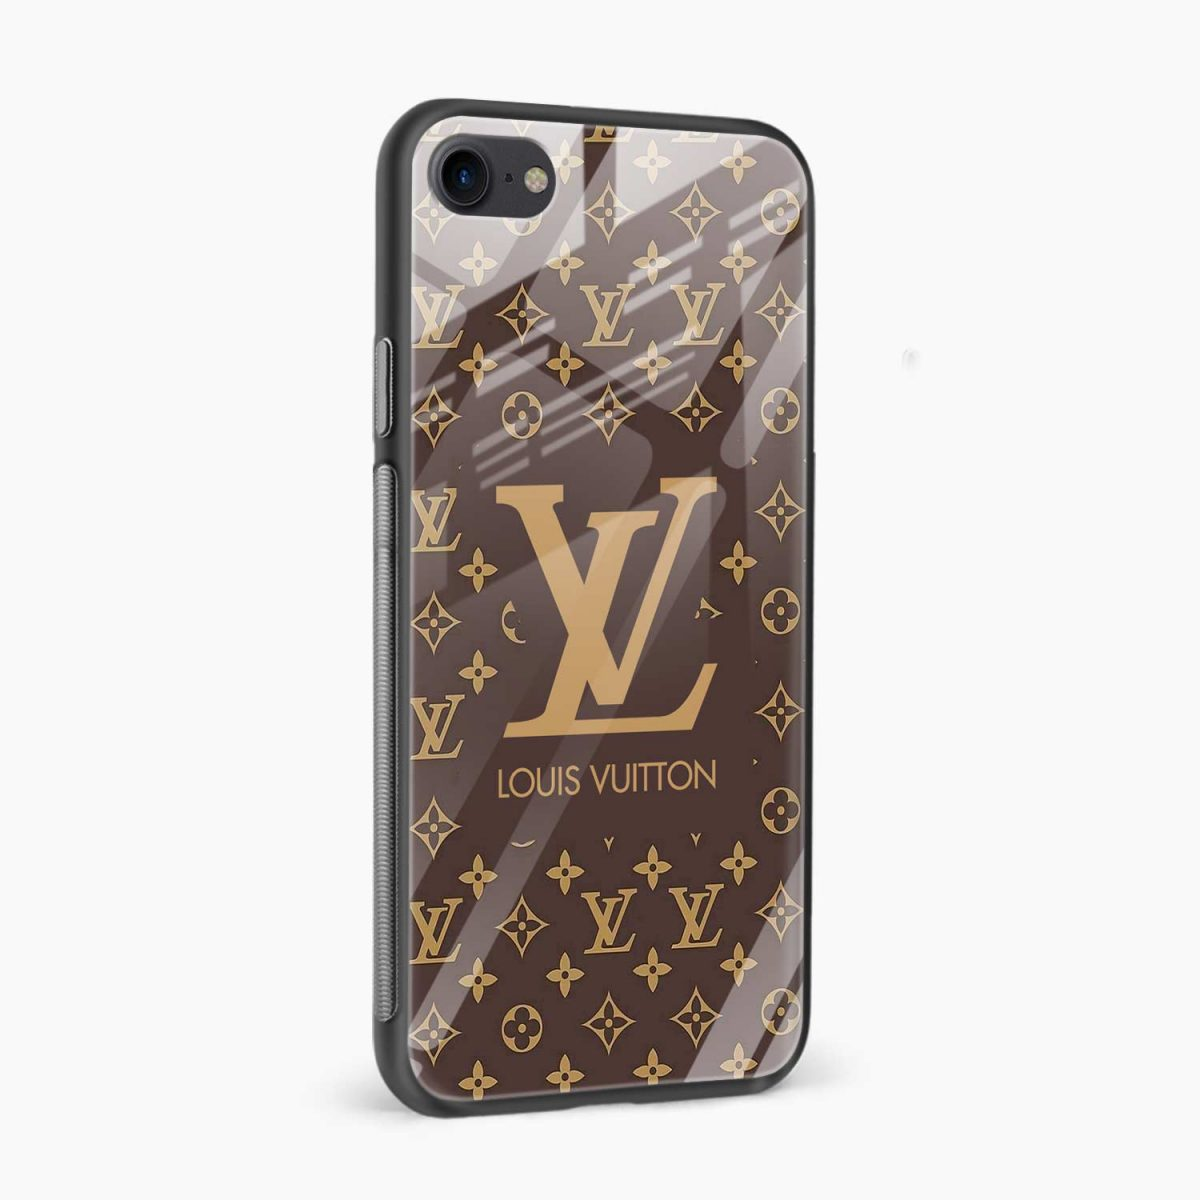 louis vuitton side view apple iphone 6 7 8 se back cover